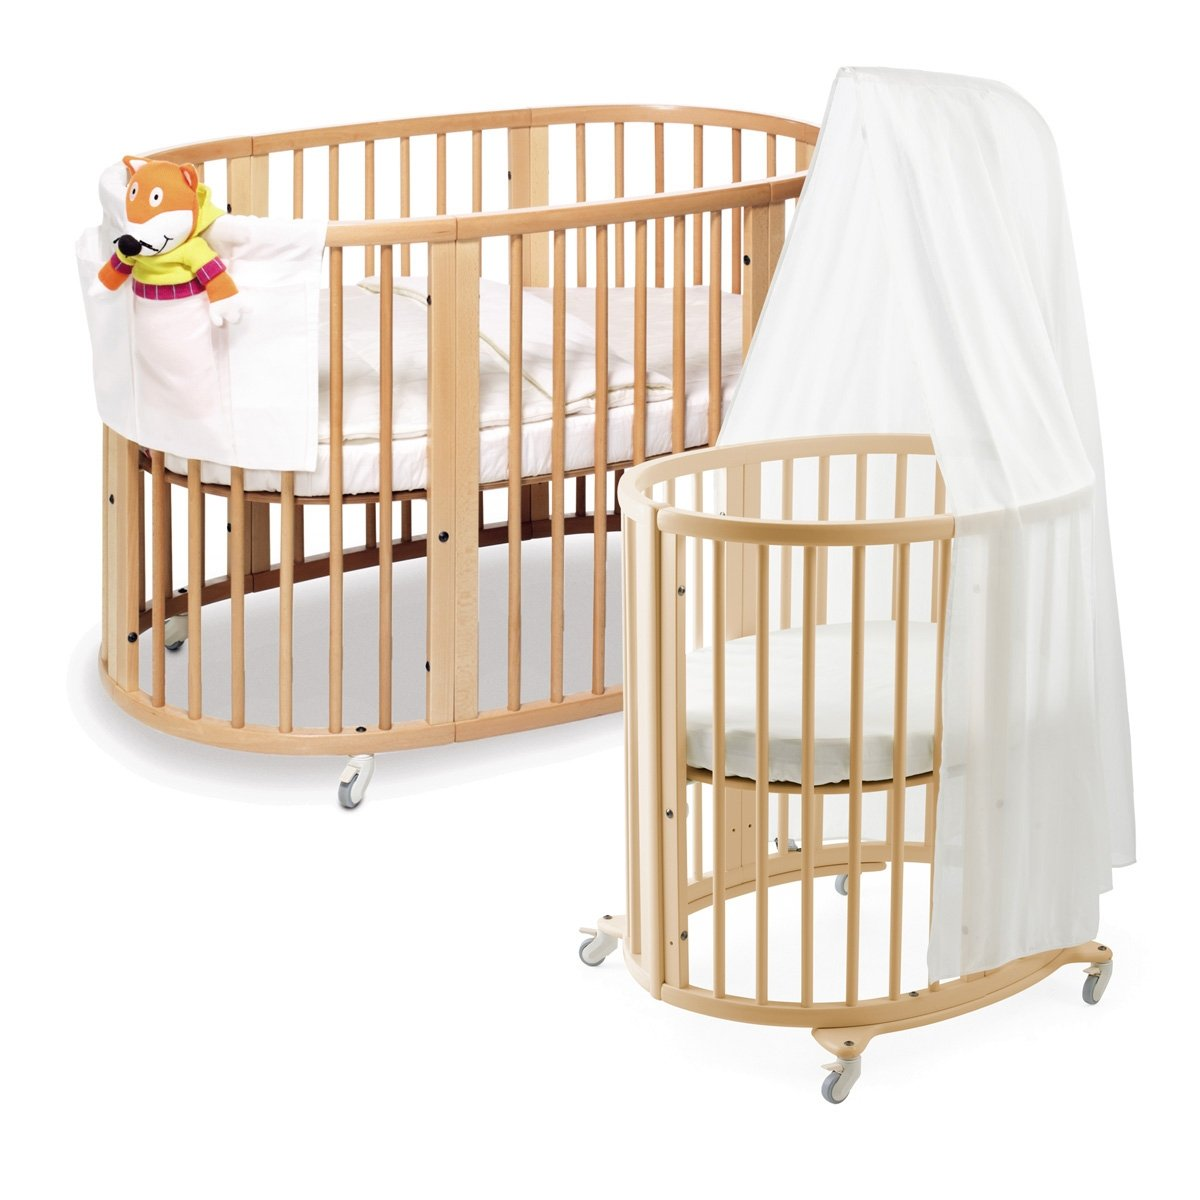 pin crib and bloom small mini foldable for alma urban baby cribs nursery portable spaces